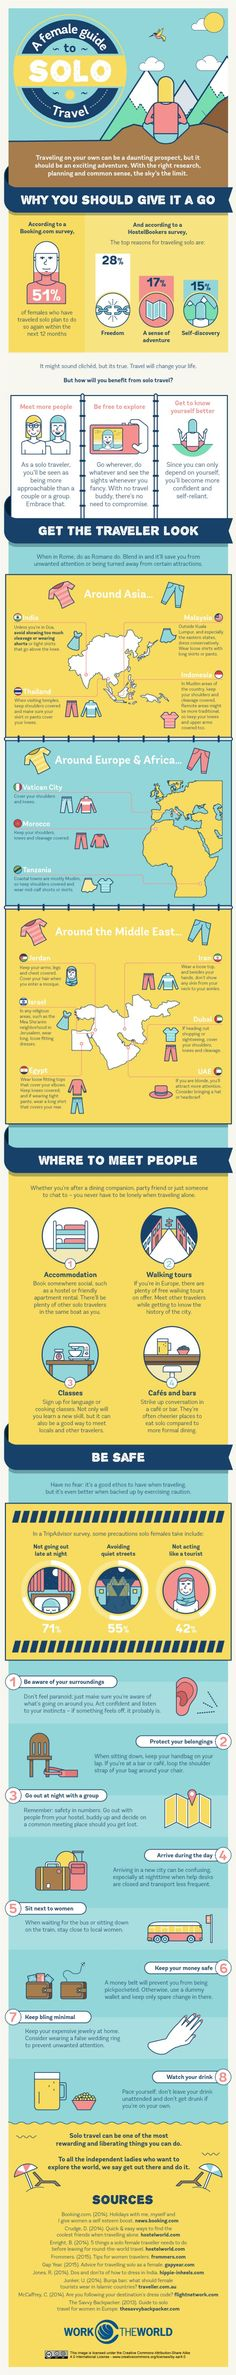 A Female Guide to Solo Travel #infographic #Travel